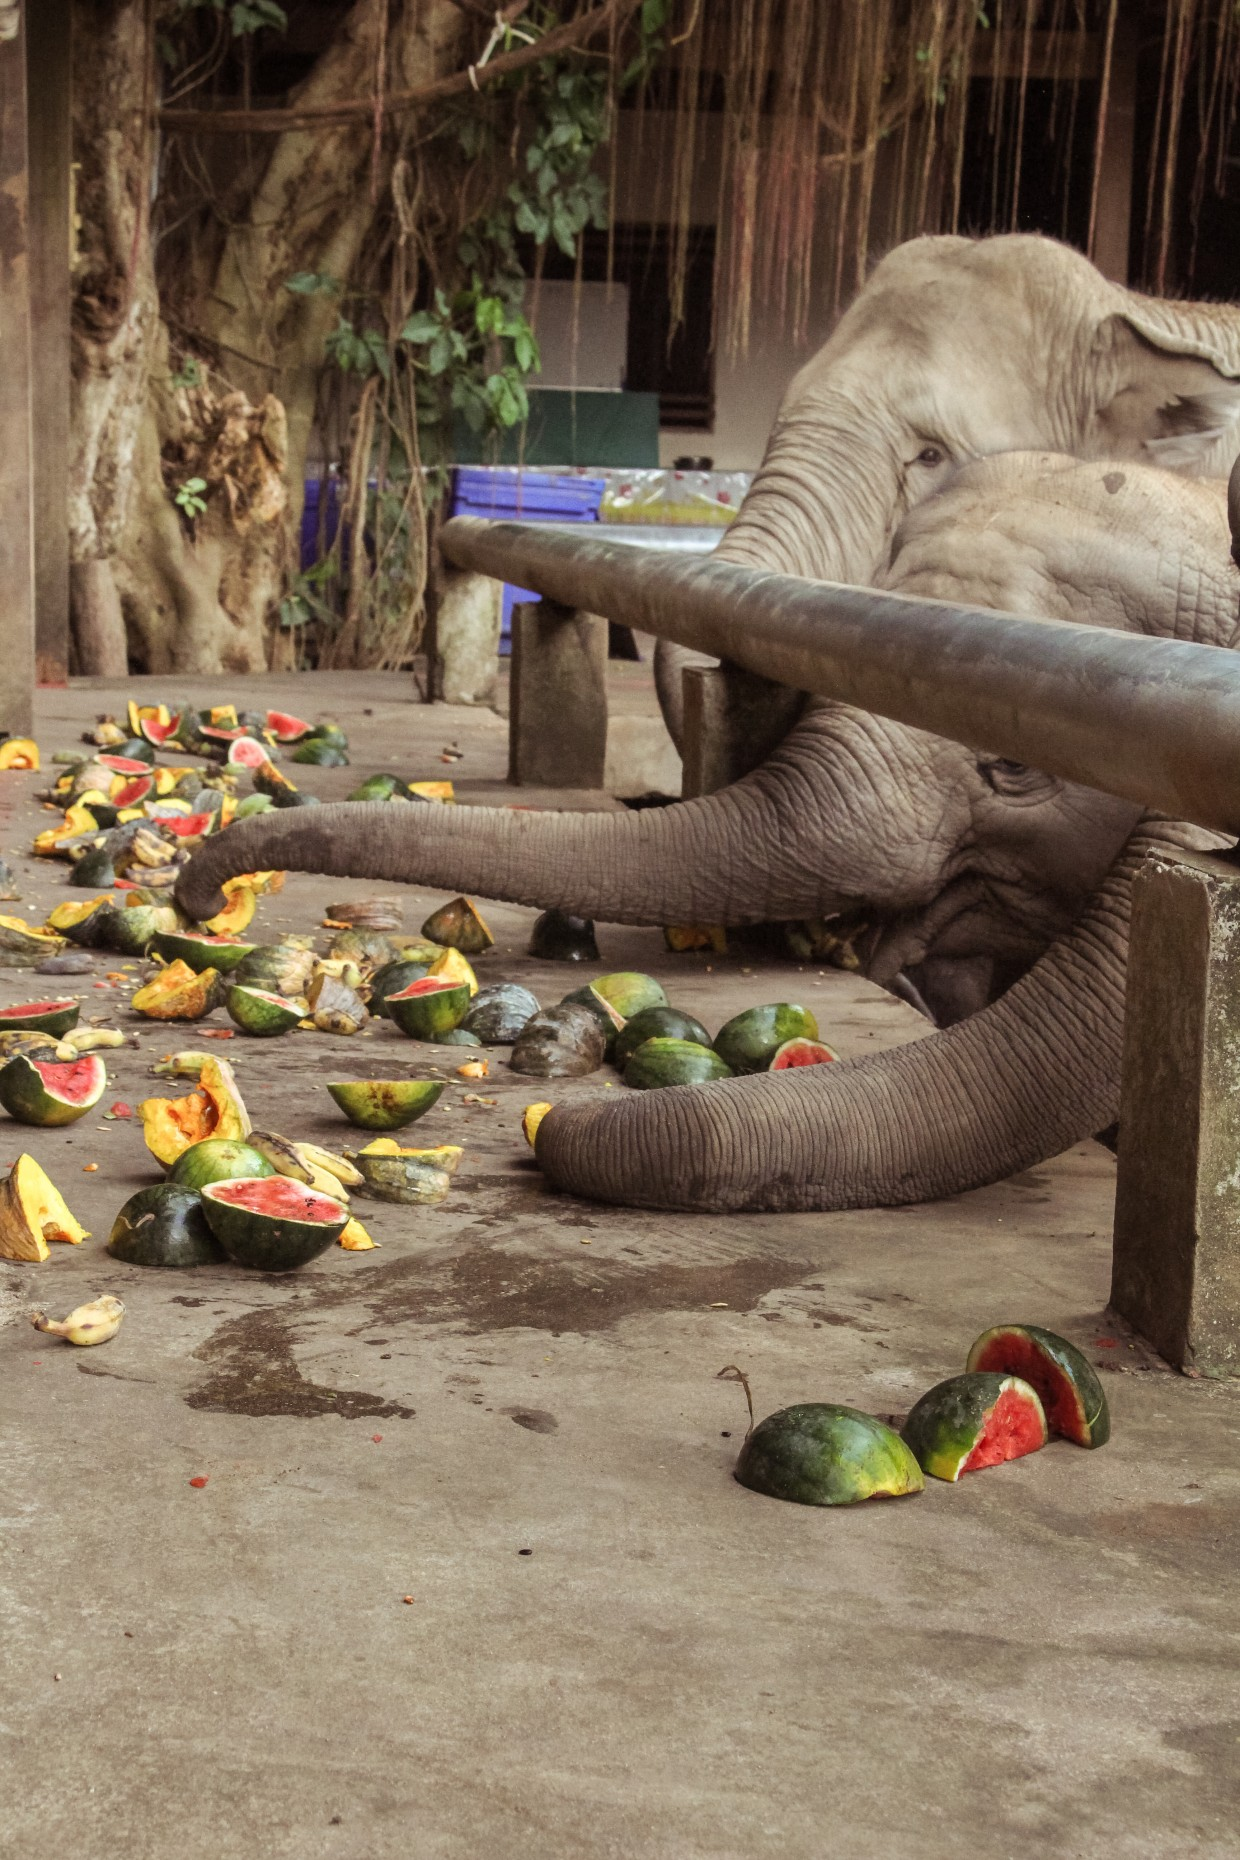 Elephants eating their lunch